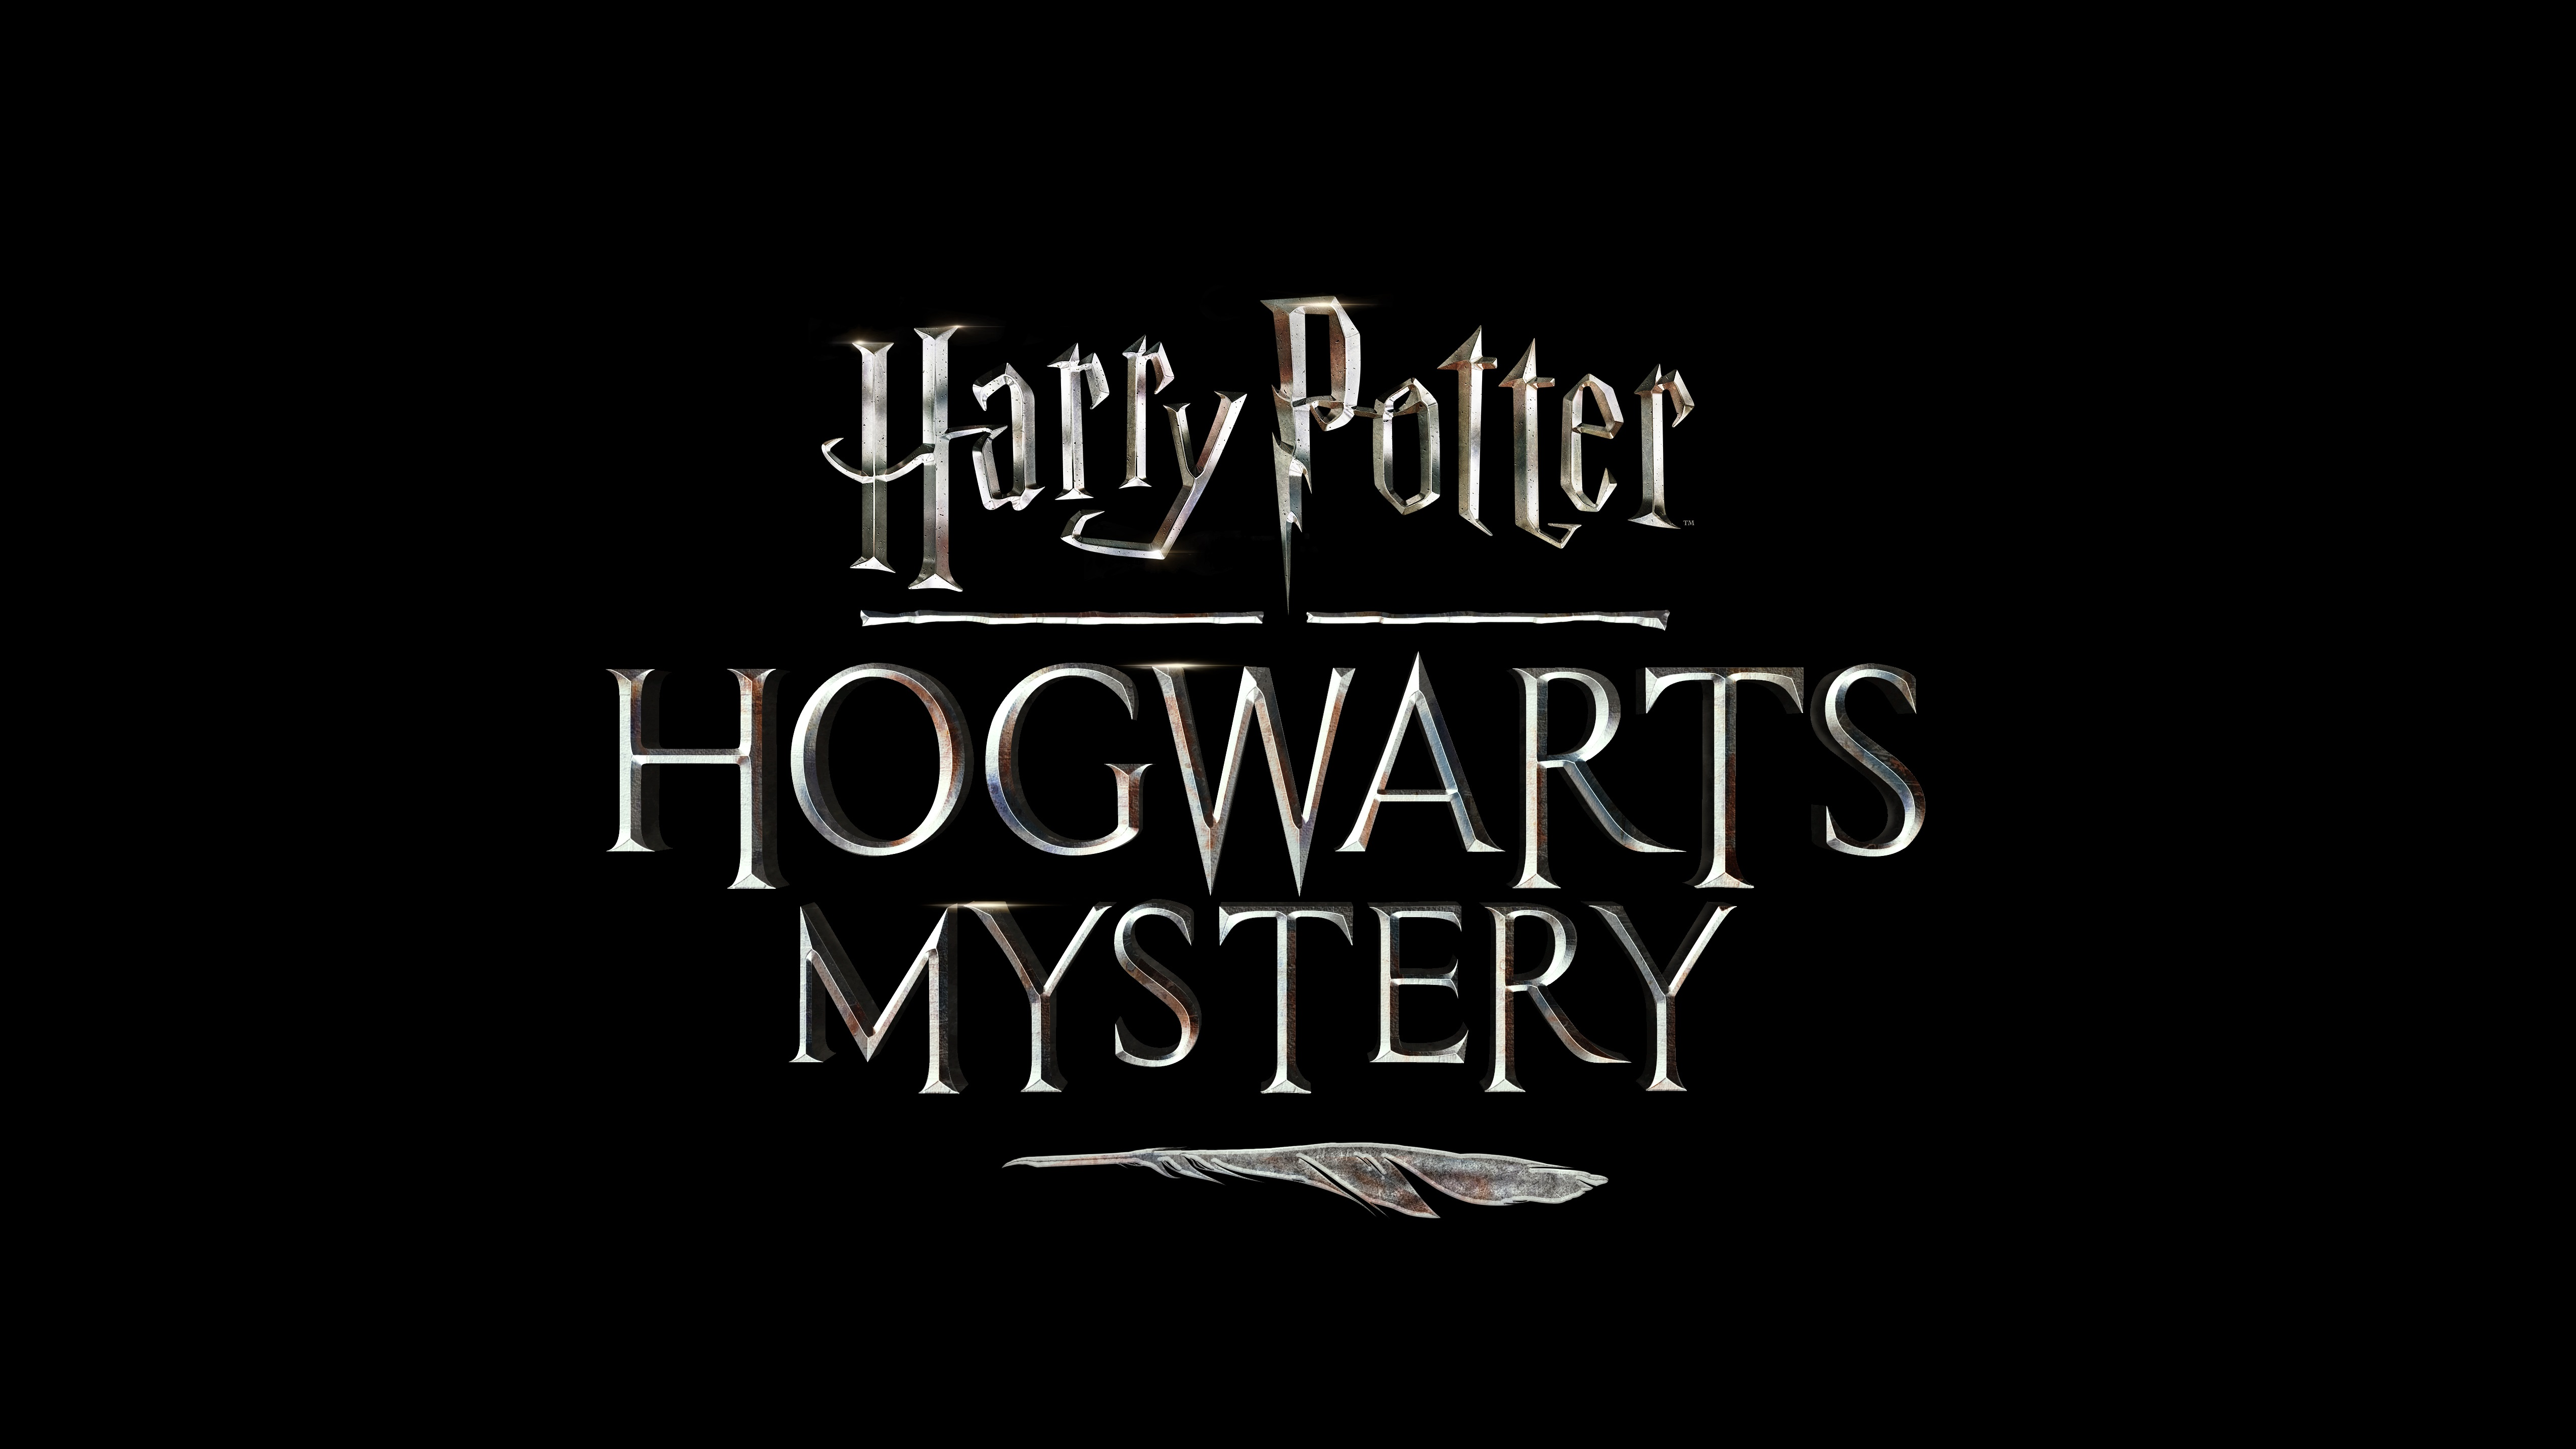 Cool Wallpaper Harry Potter Abstract - harry-potter-hogwarts-mystery-game-logo-gc  HD_204171.jpg